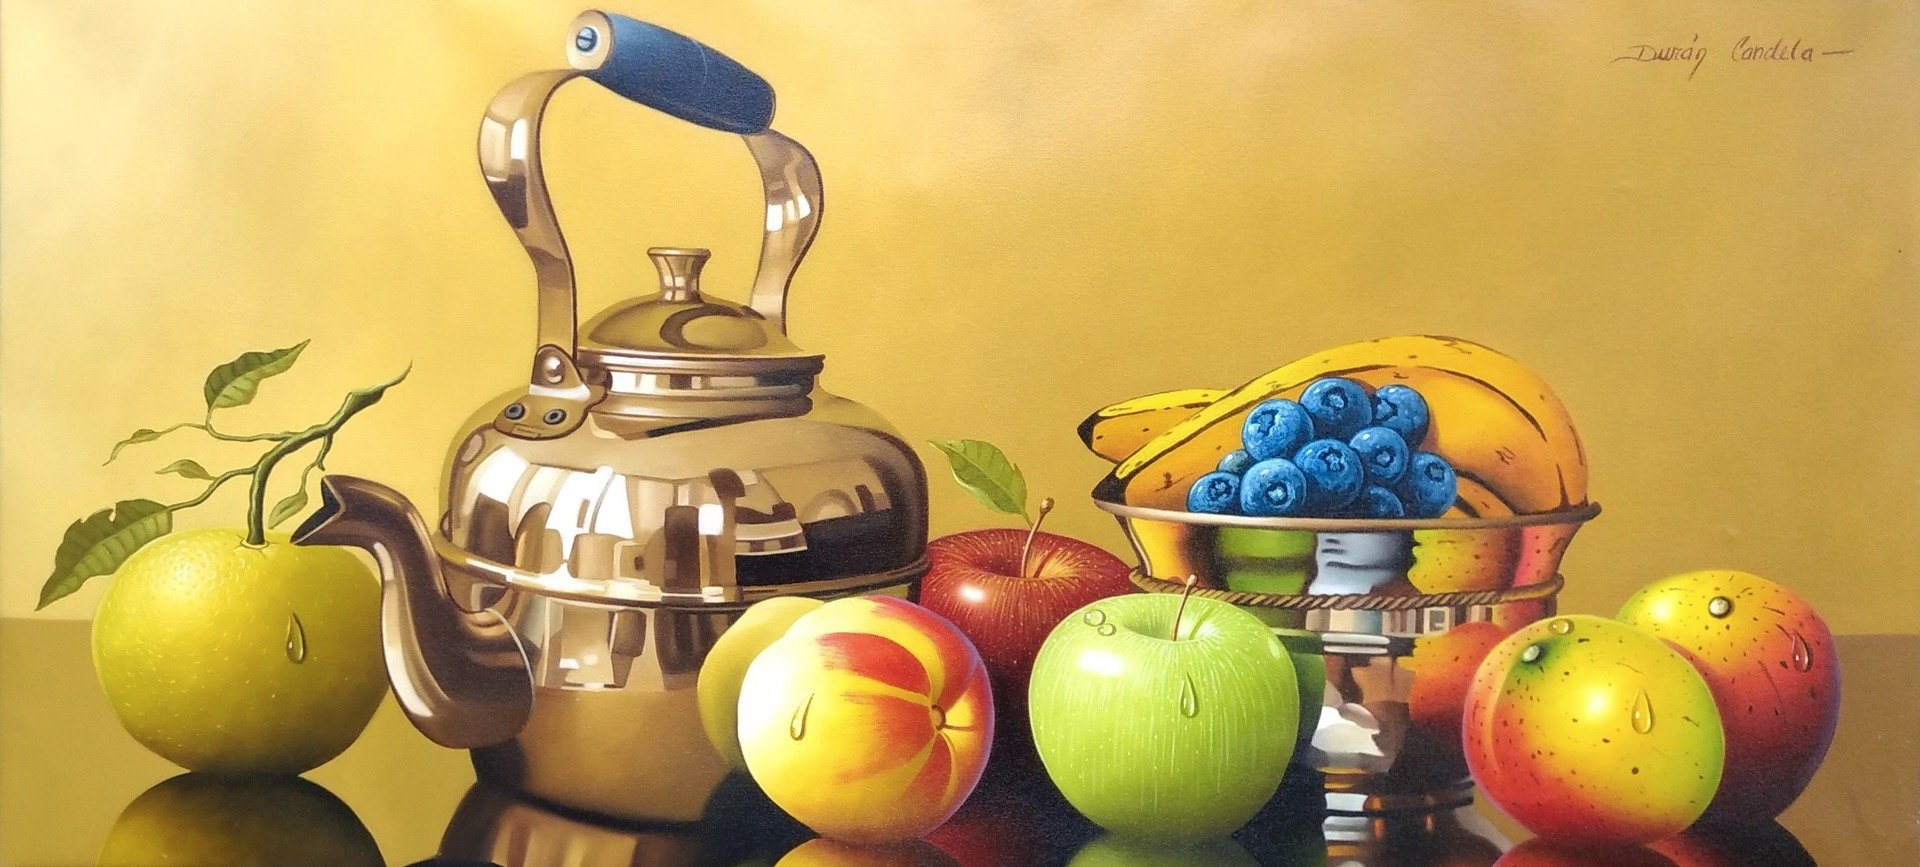 Original Still Life Oil Painting on Canvas depicting fruits, a tea pot and bowl.